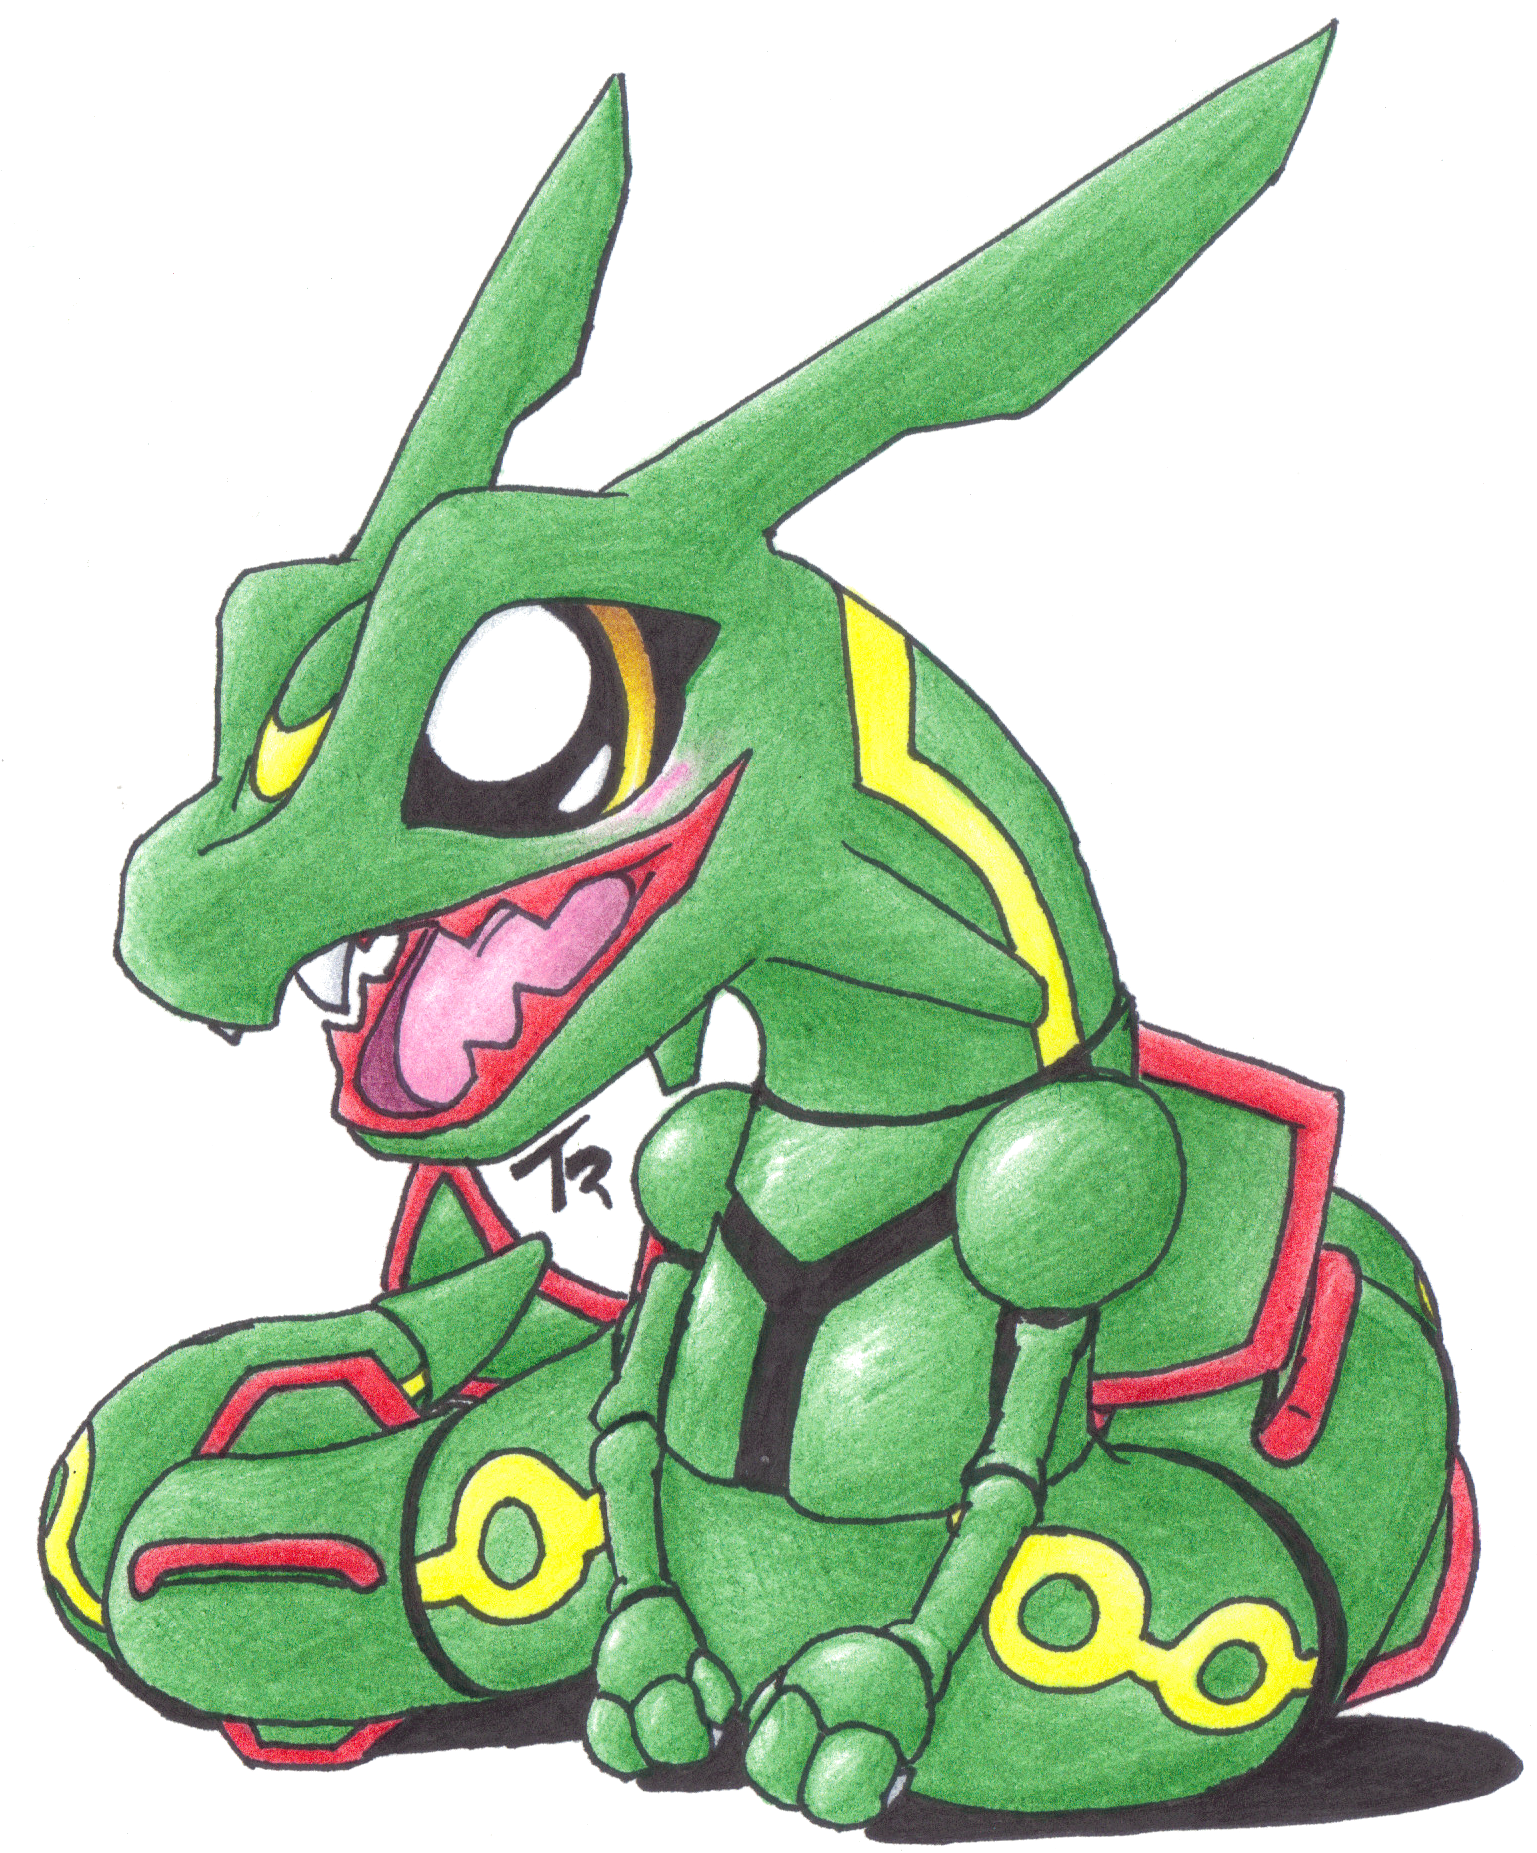 Commission - Chibi Rayquaza by MotherGarchomp622 on DeviantArt